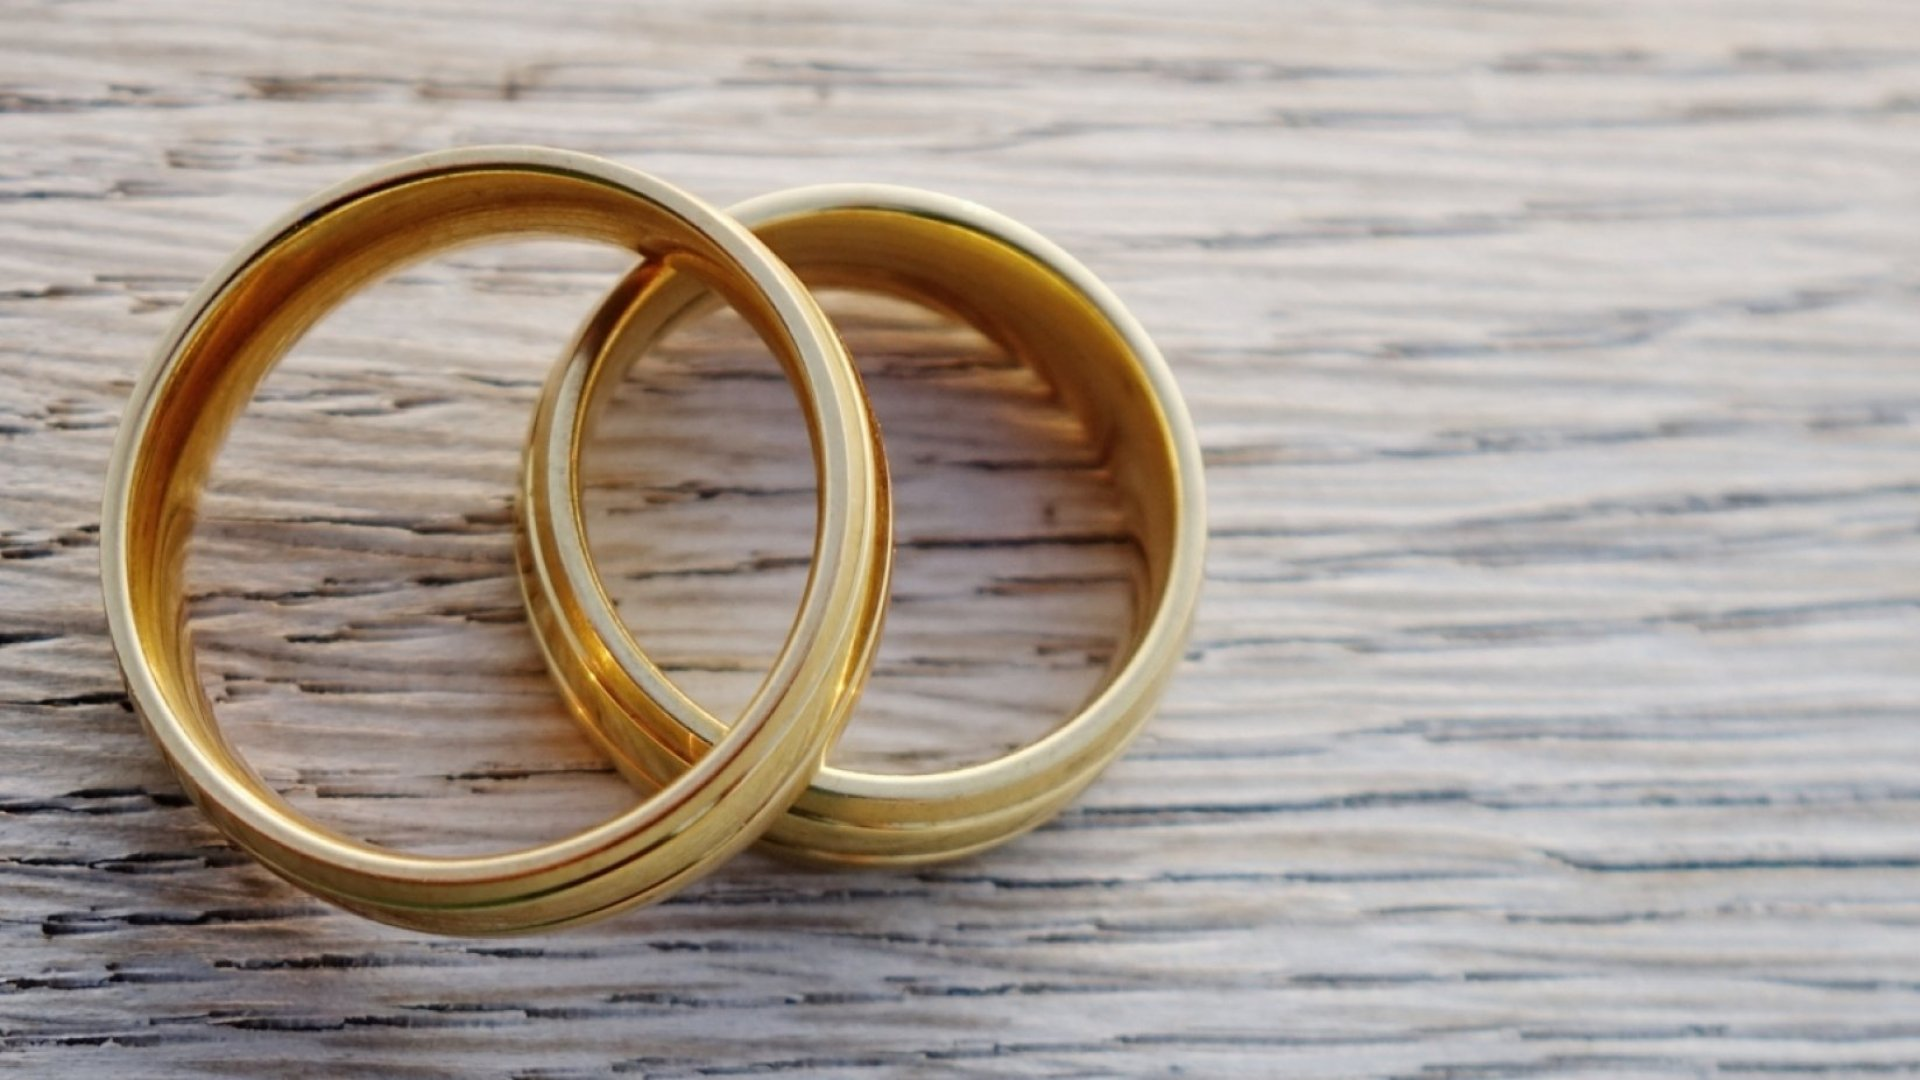 Marriage Mismatch? Research Shows Today's Single Men Don't Meet Single Women's Expectations